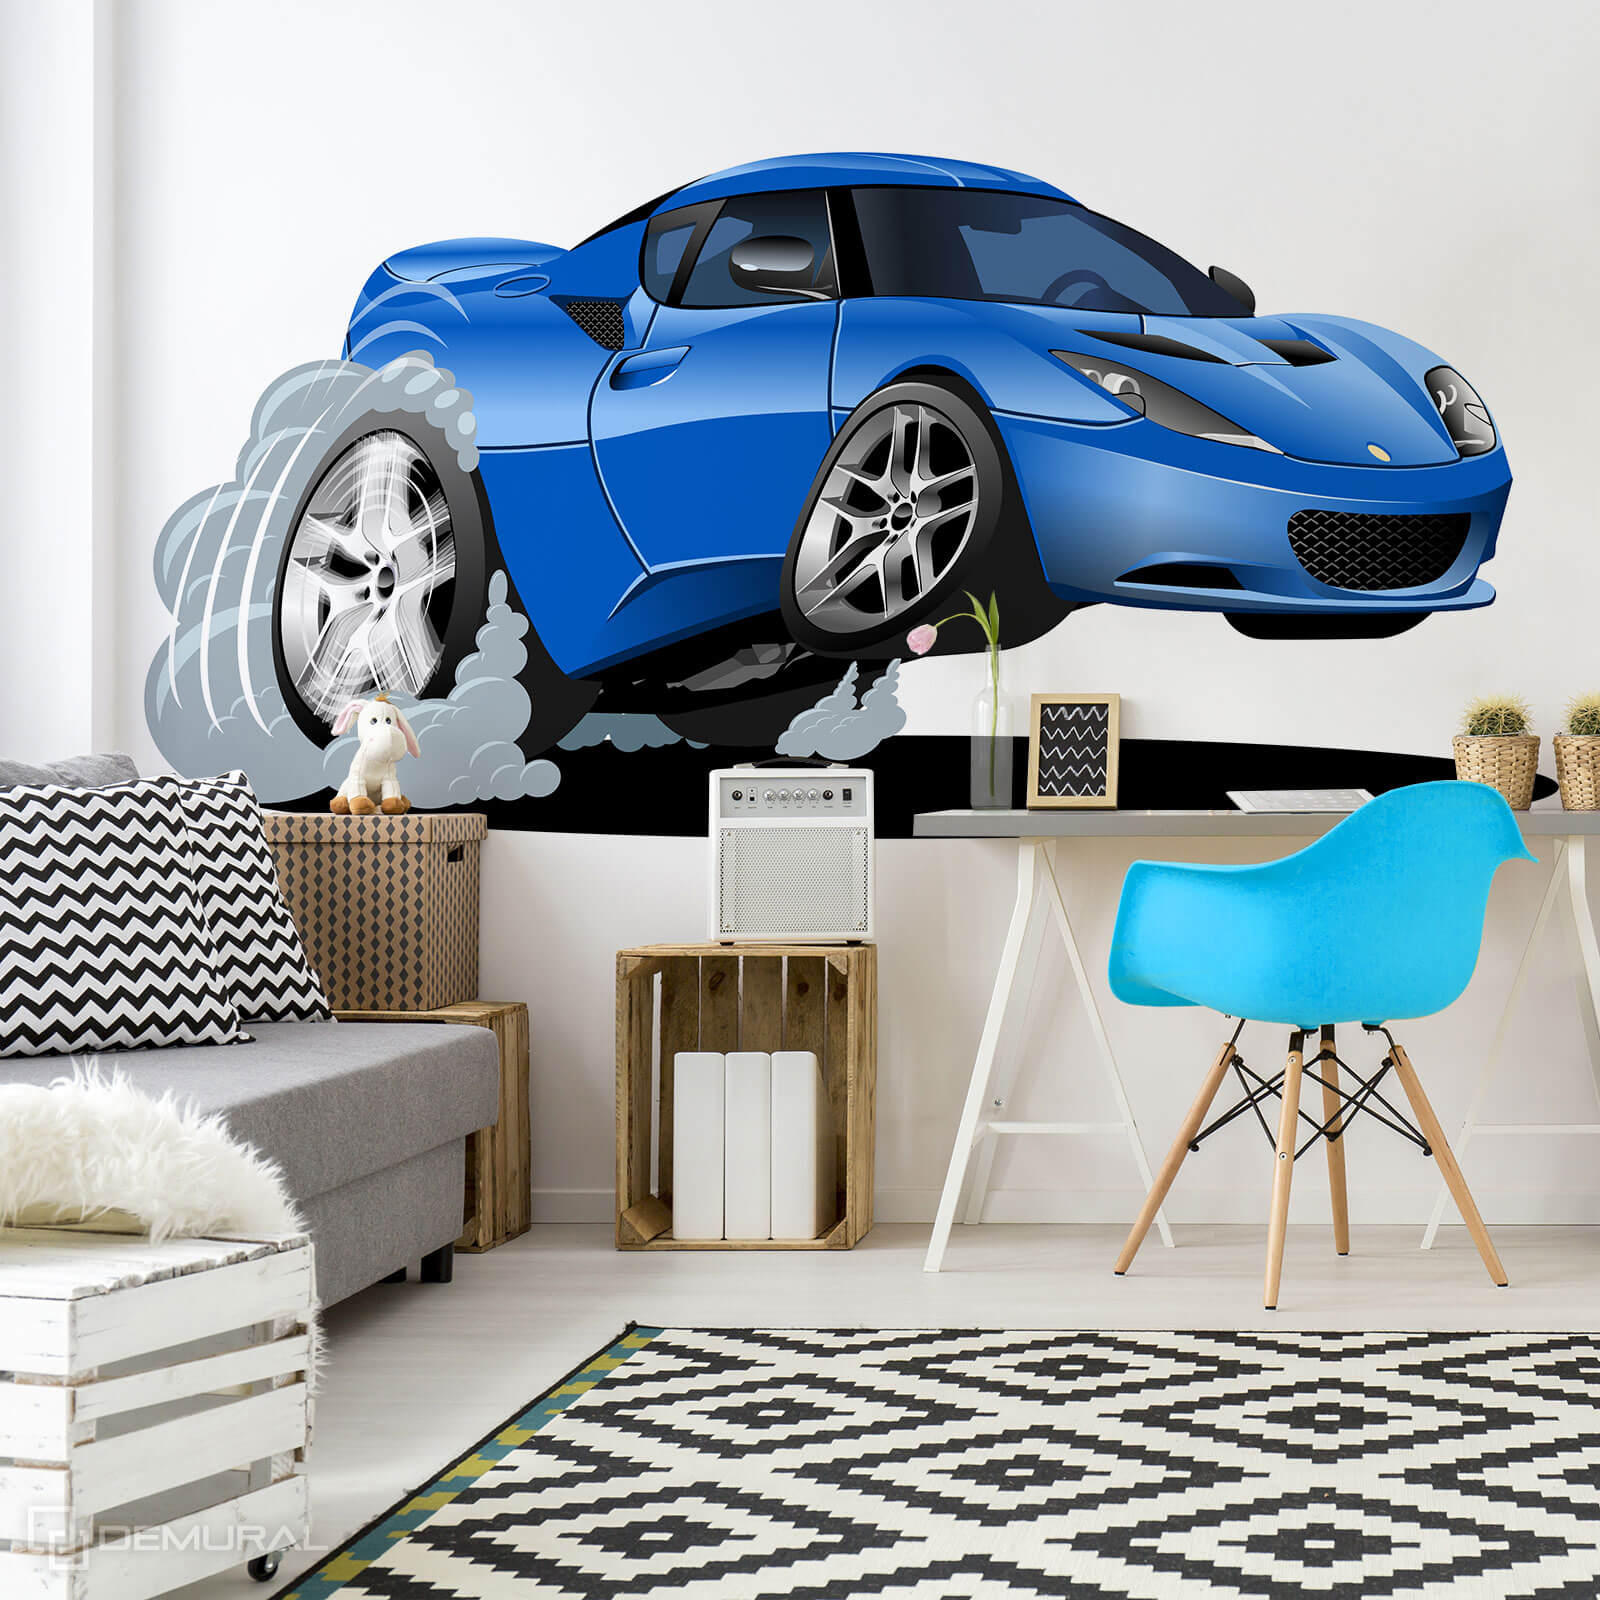 Photo wallpaper  Speeding toy car - Photo wallpaper car - Demural